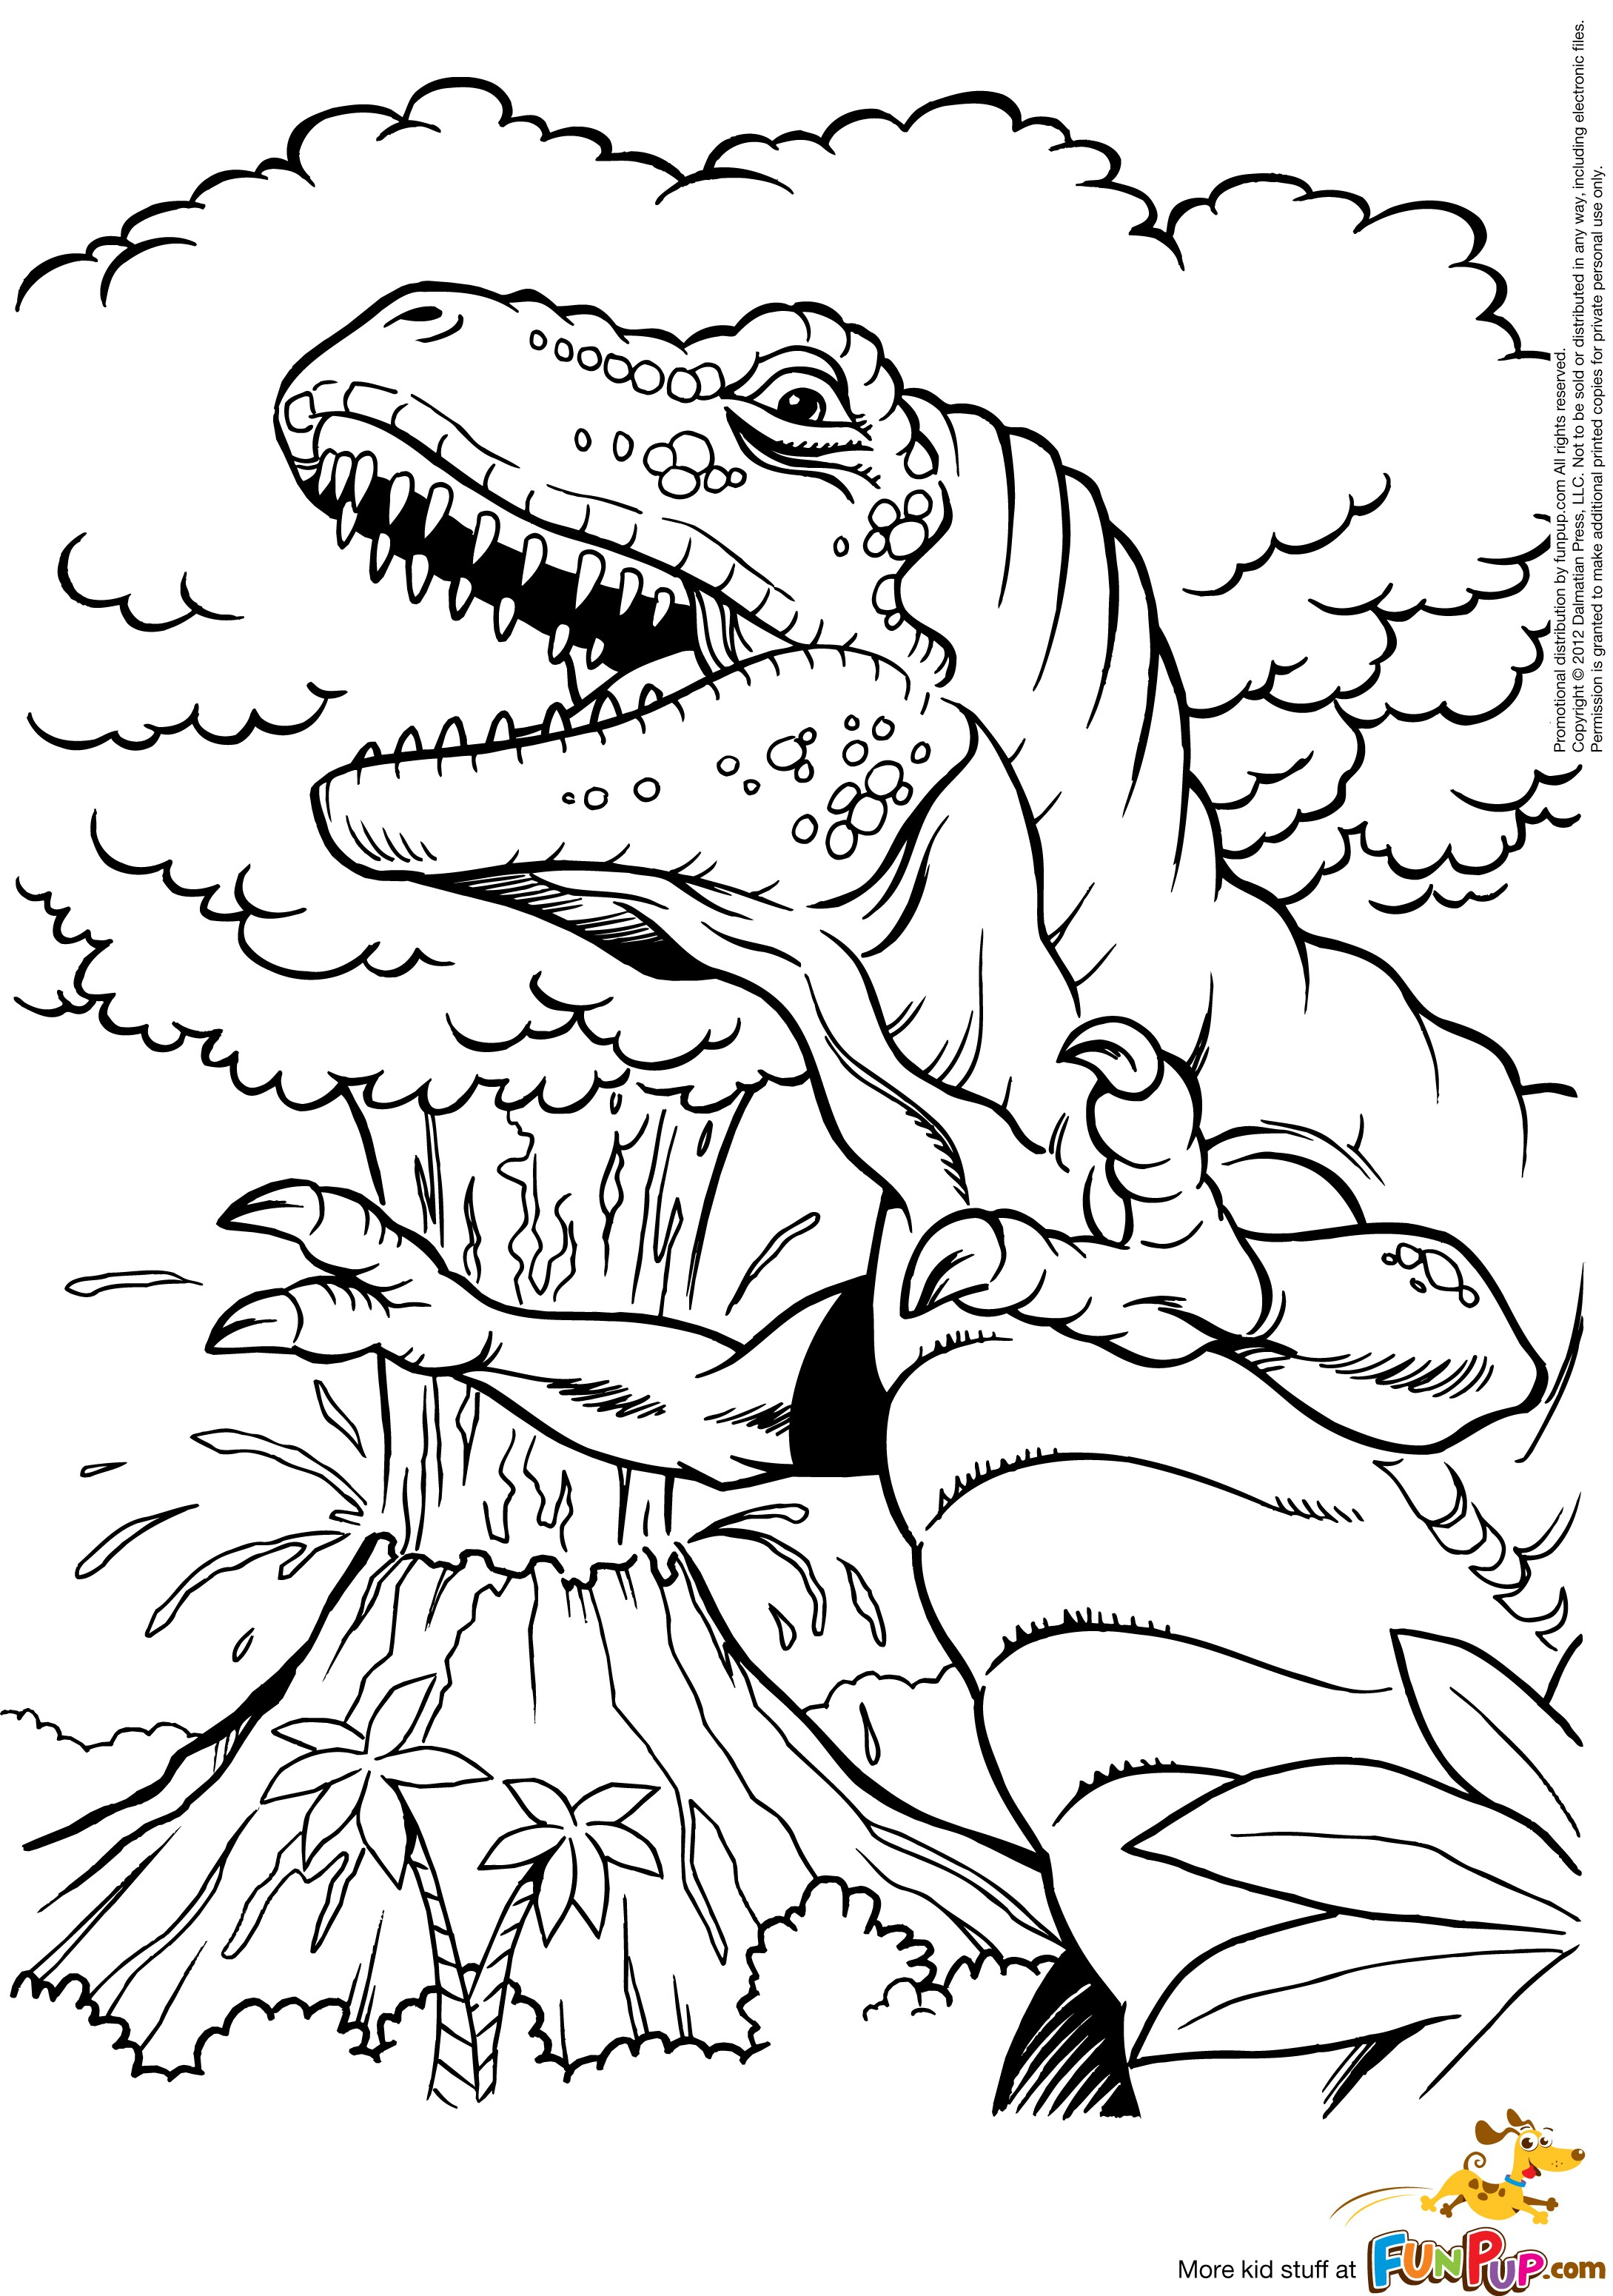 Volcano 166595 Nature Printable Coloring Pages